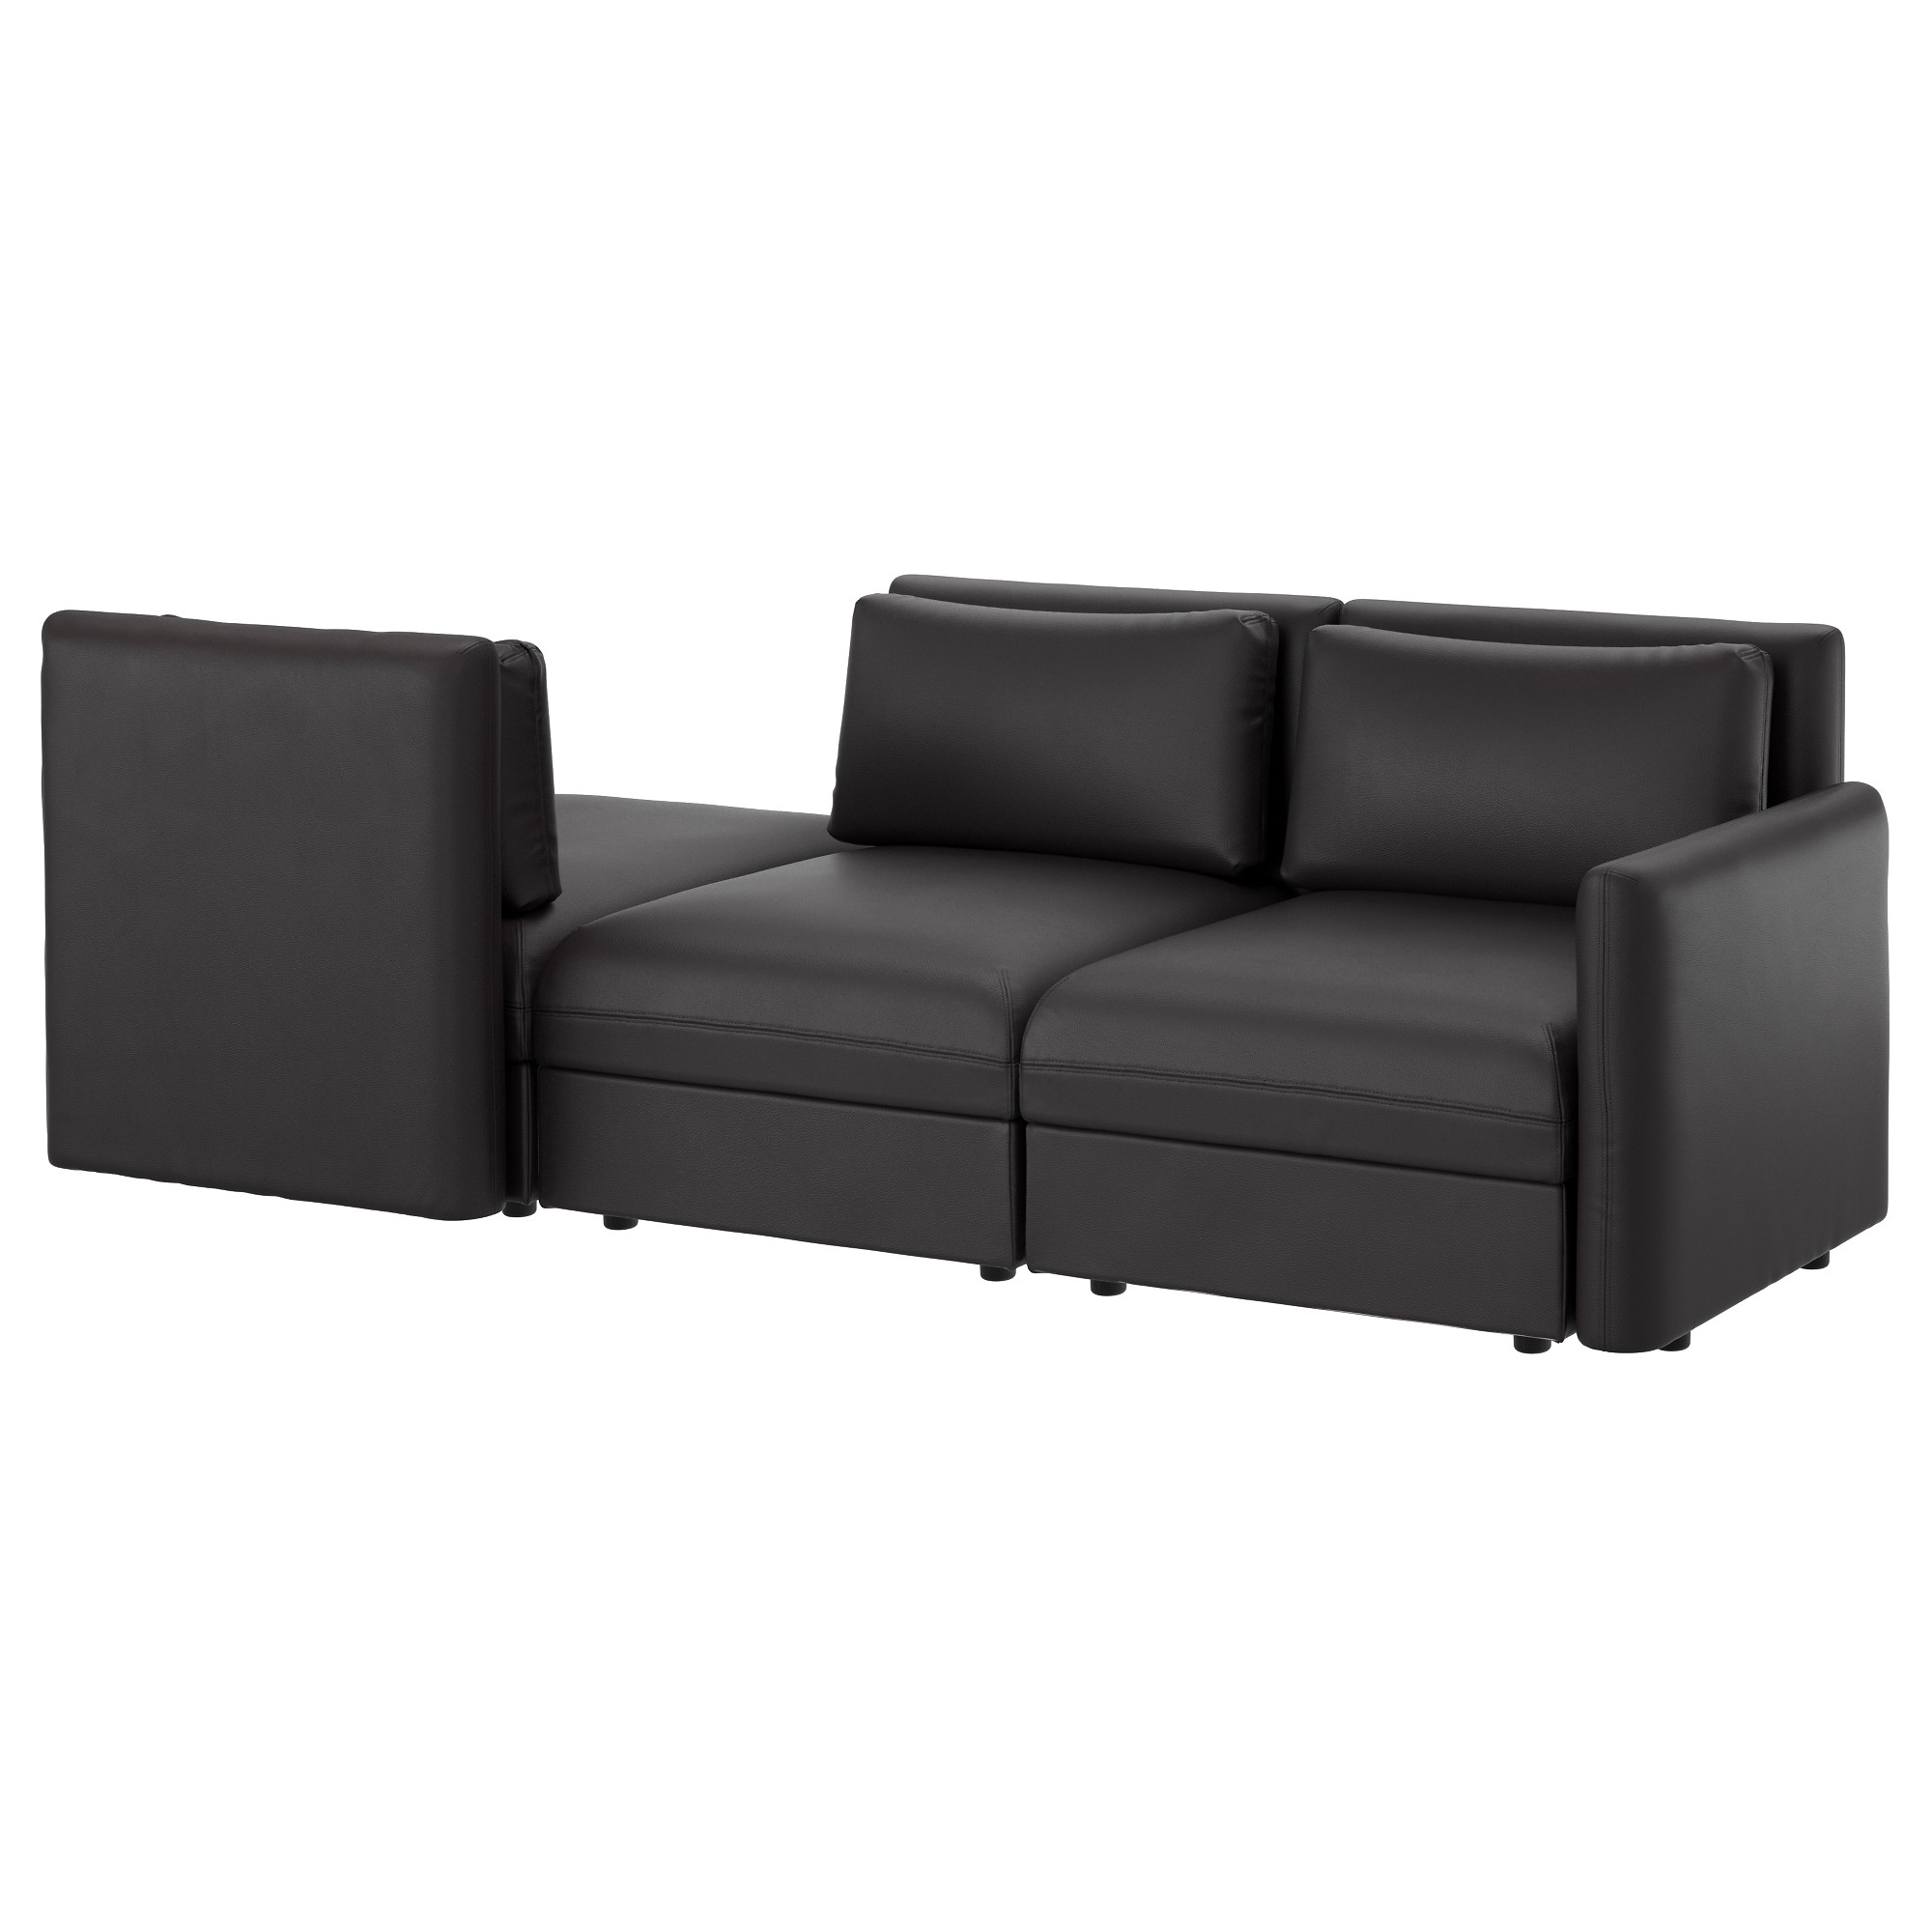 Sectional Sofas Couches Ikea Intended For 7 Seat Sectional Sofa (Image 14 of 15)